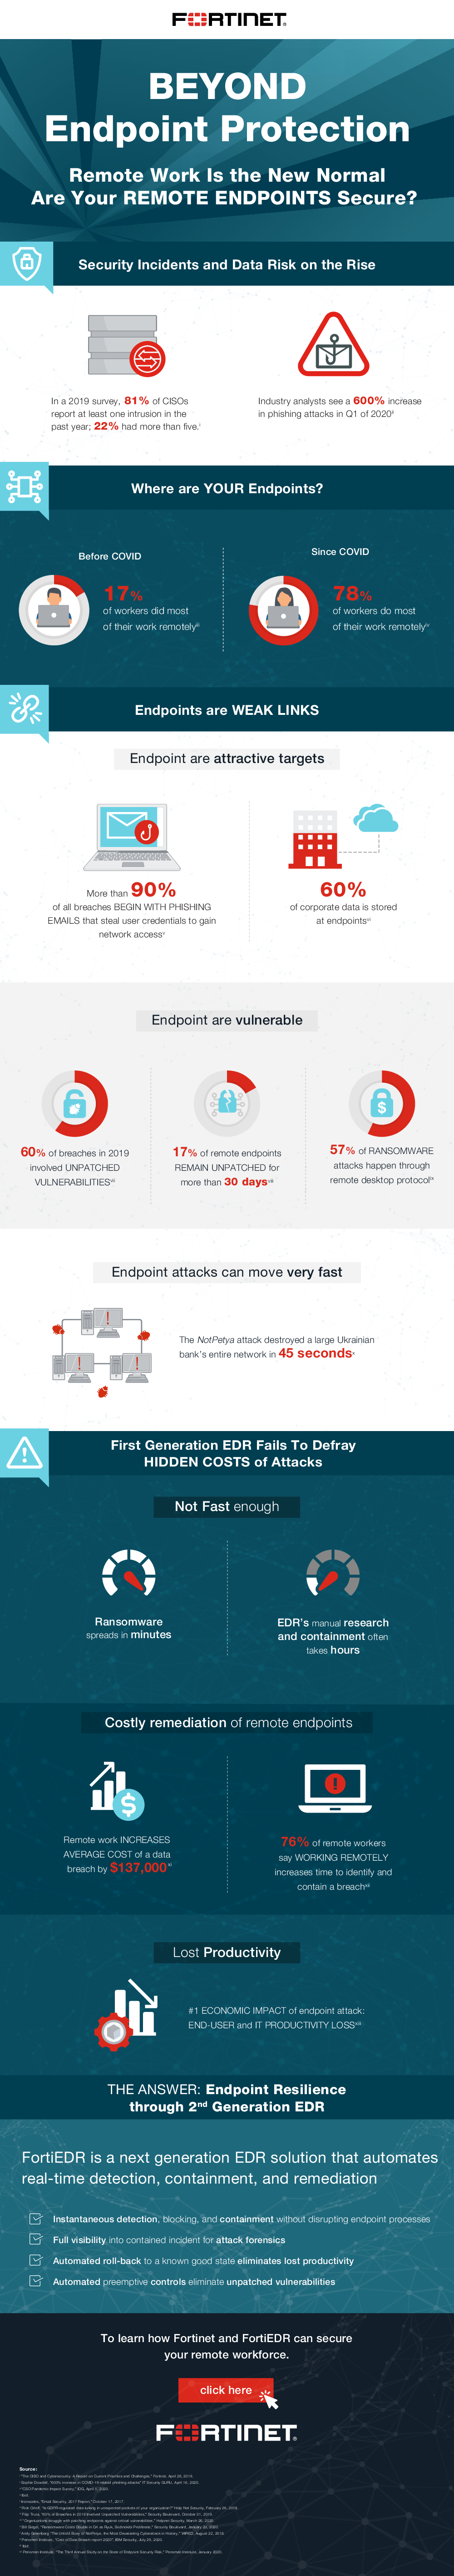 Thumb original infographic beyond endpoint protection remote work is the new normal